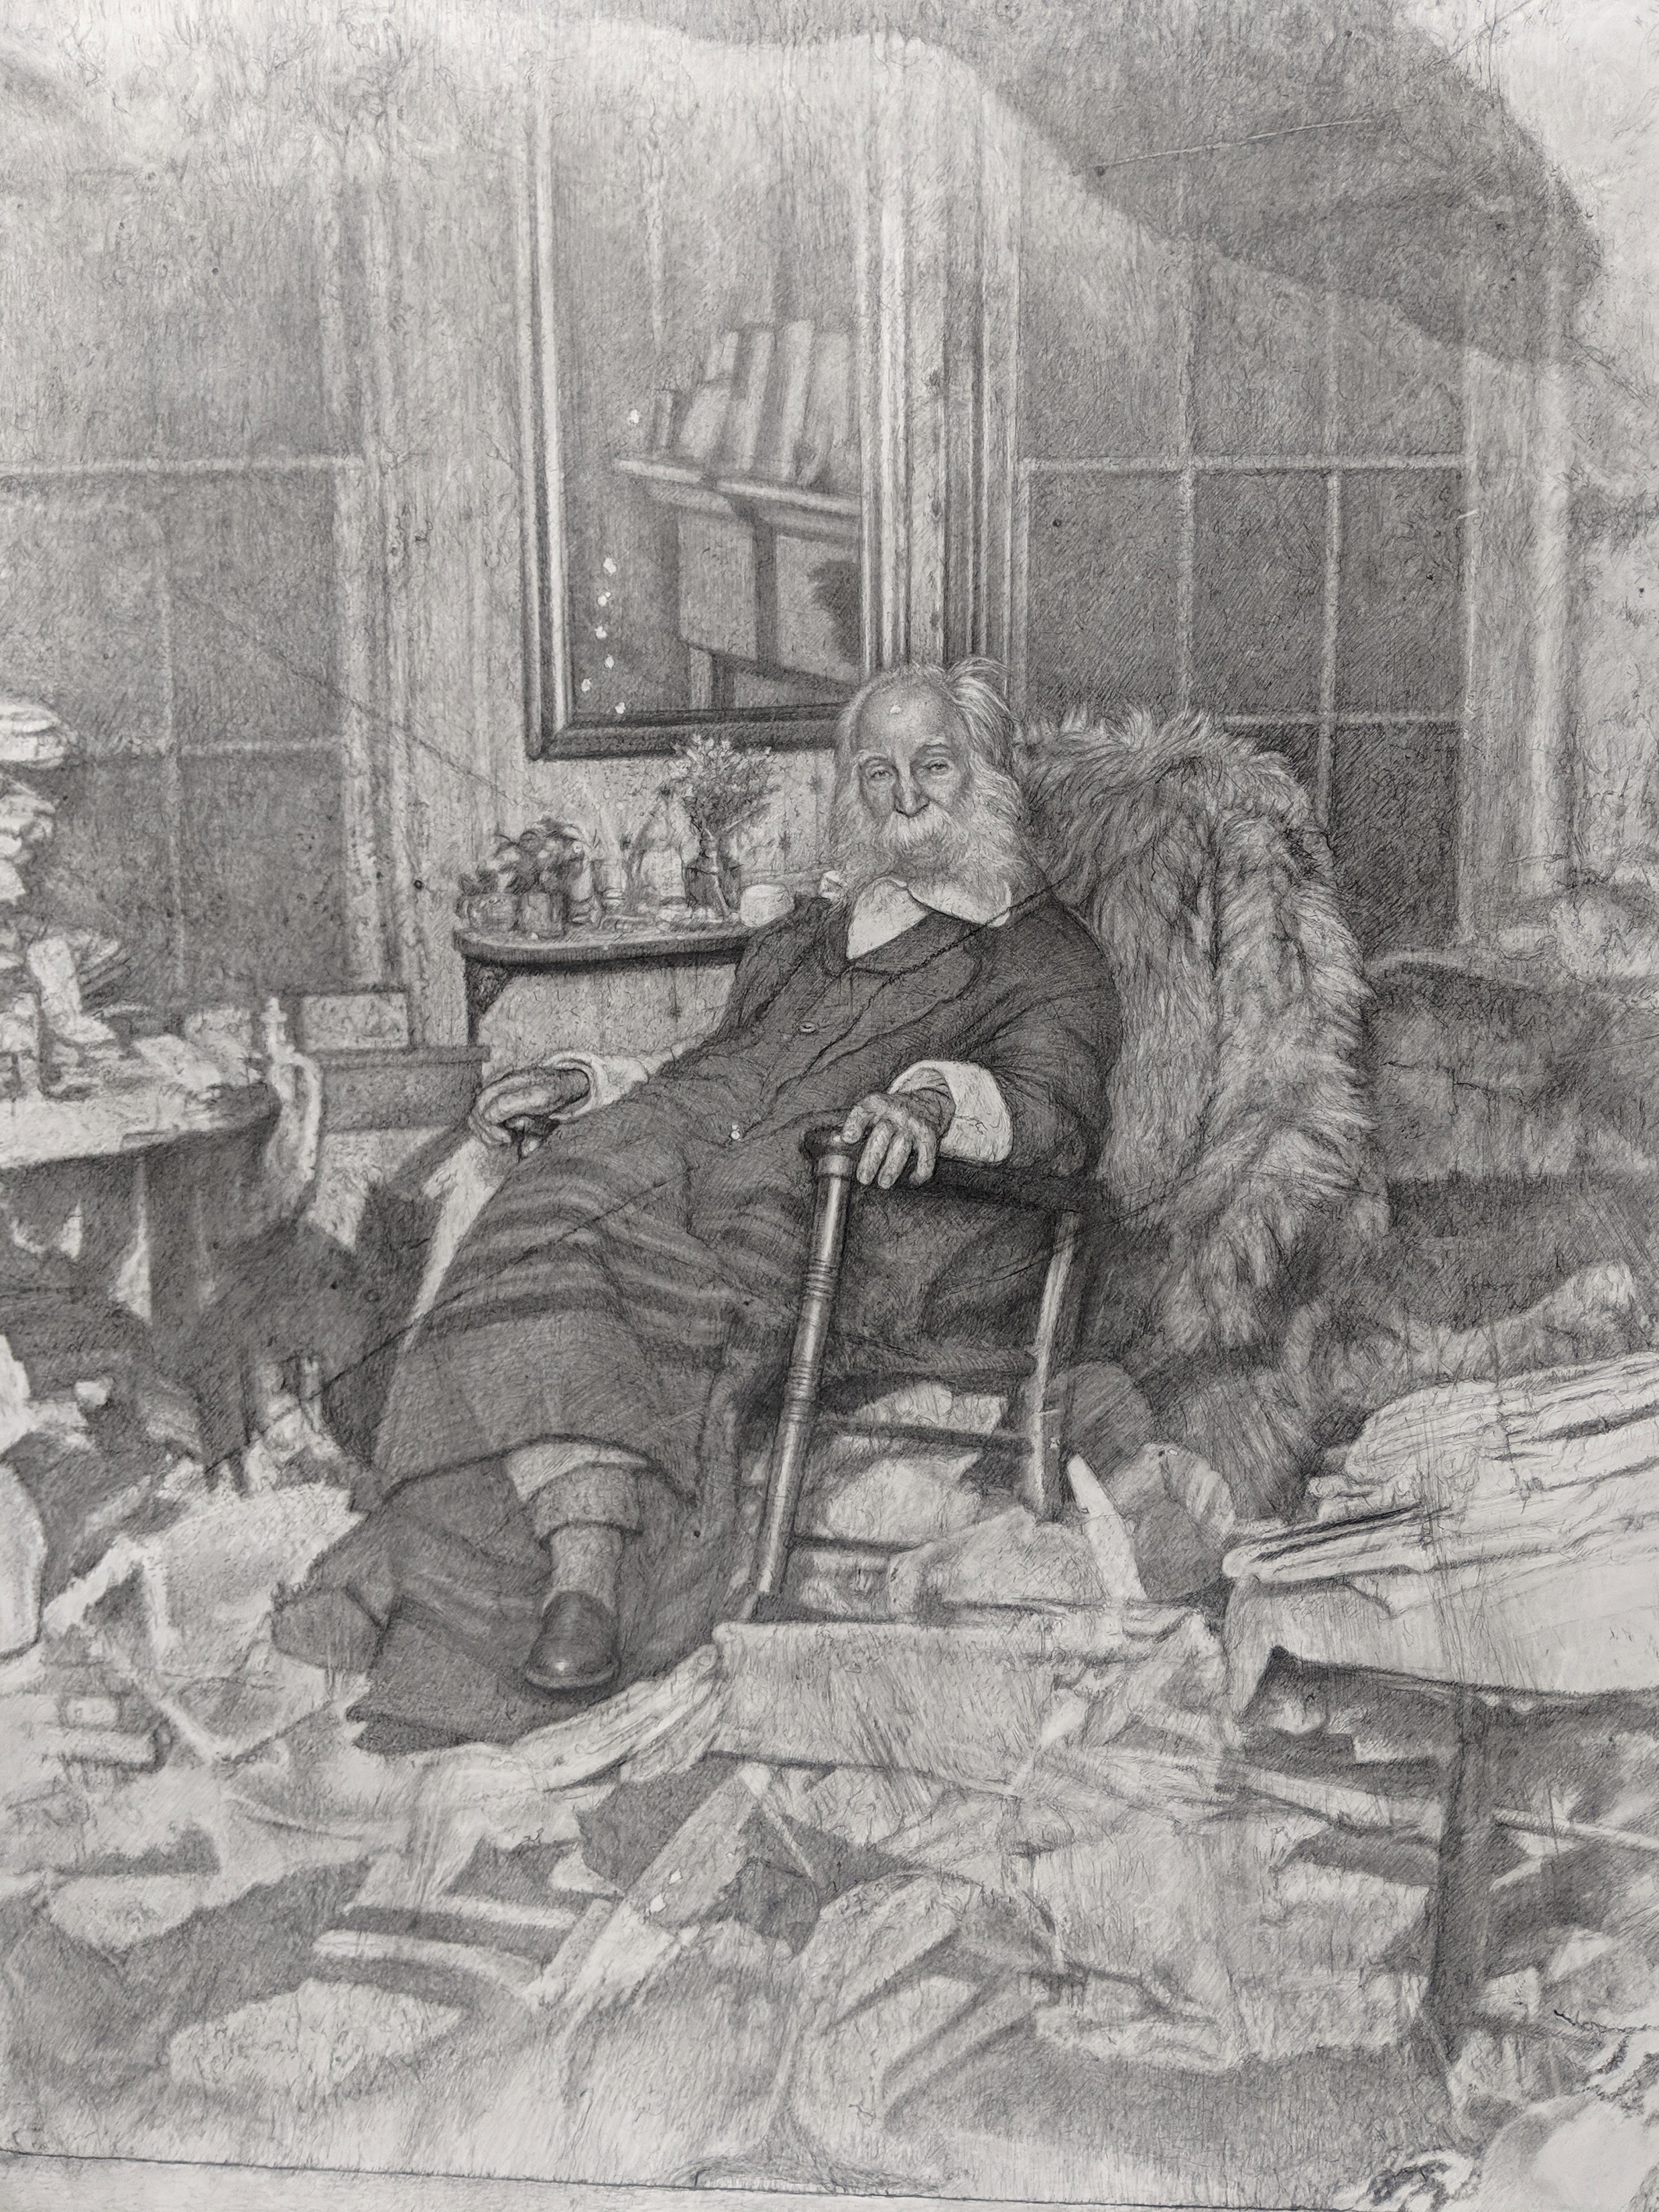 Mark Stockton,  The Poet in His Bedroom of Walt Whitman in repose amongst a chaos of papers,  graphite drawing, 2019. Courtesy of The Pennsylvania Academy of the Fine Arts